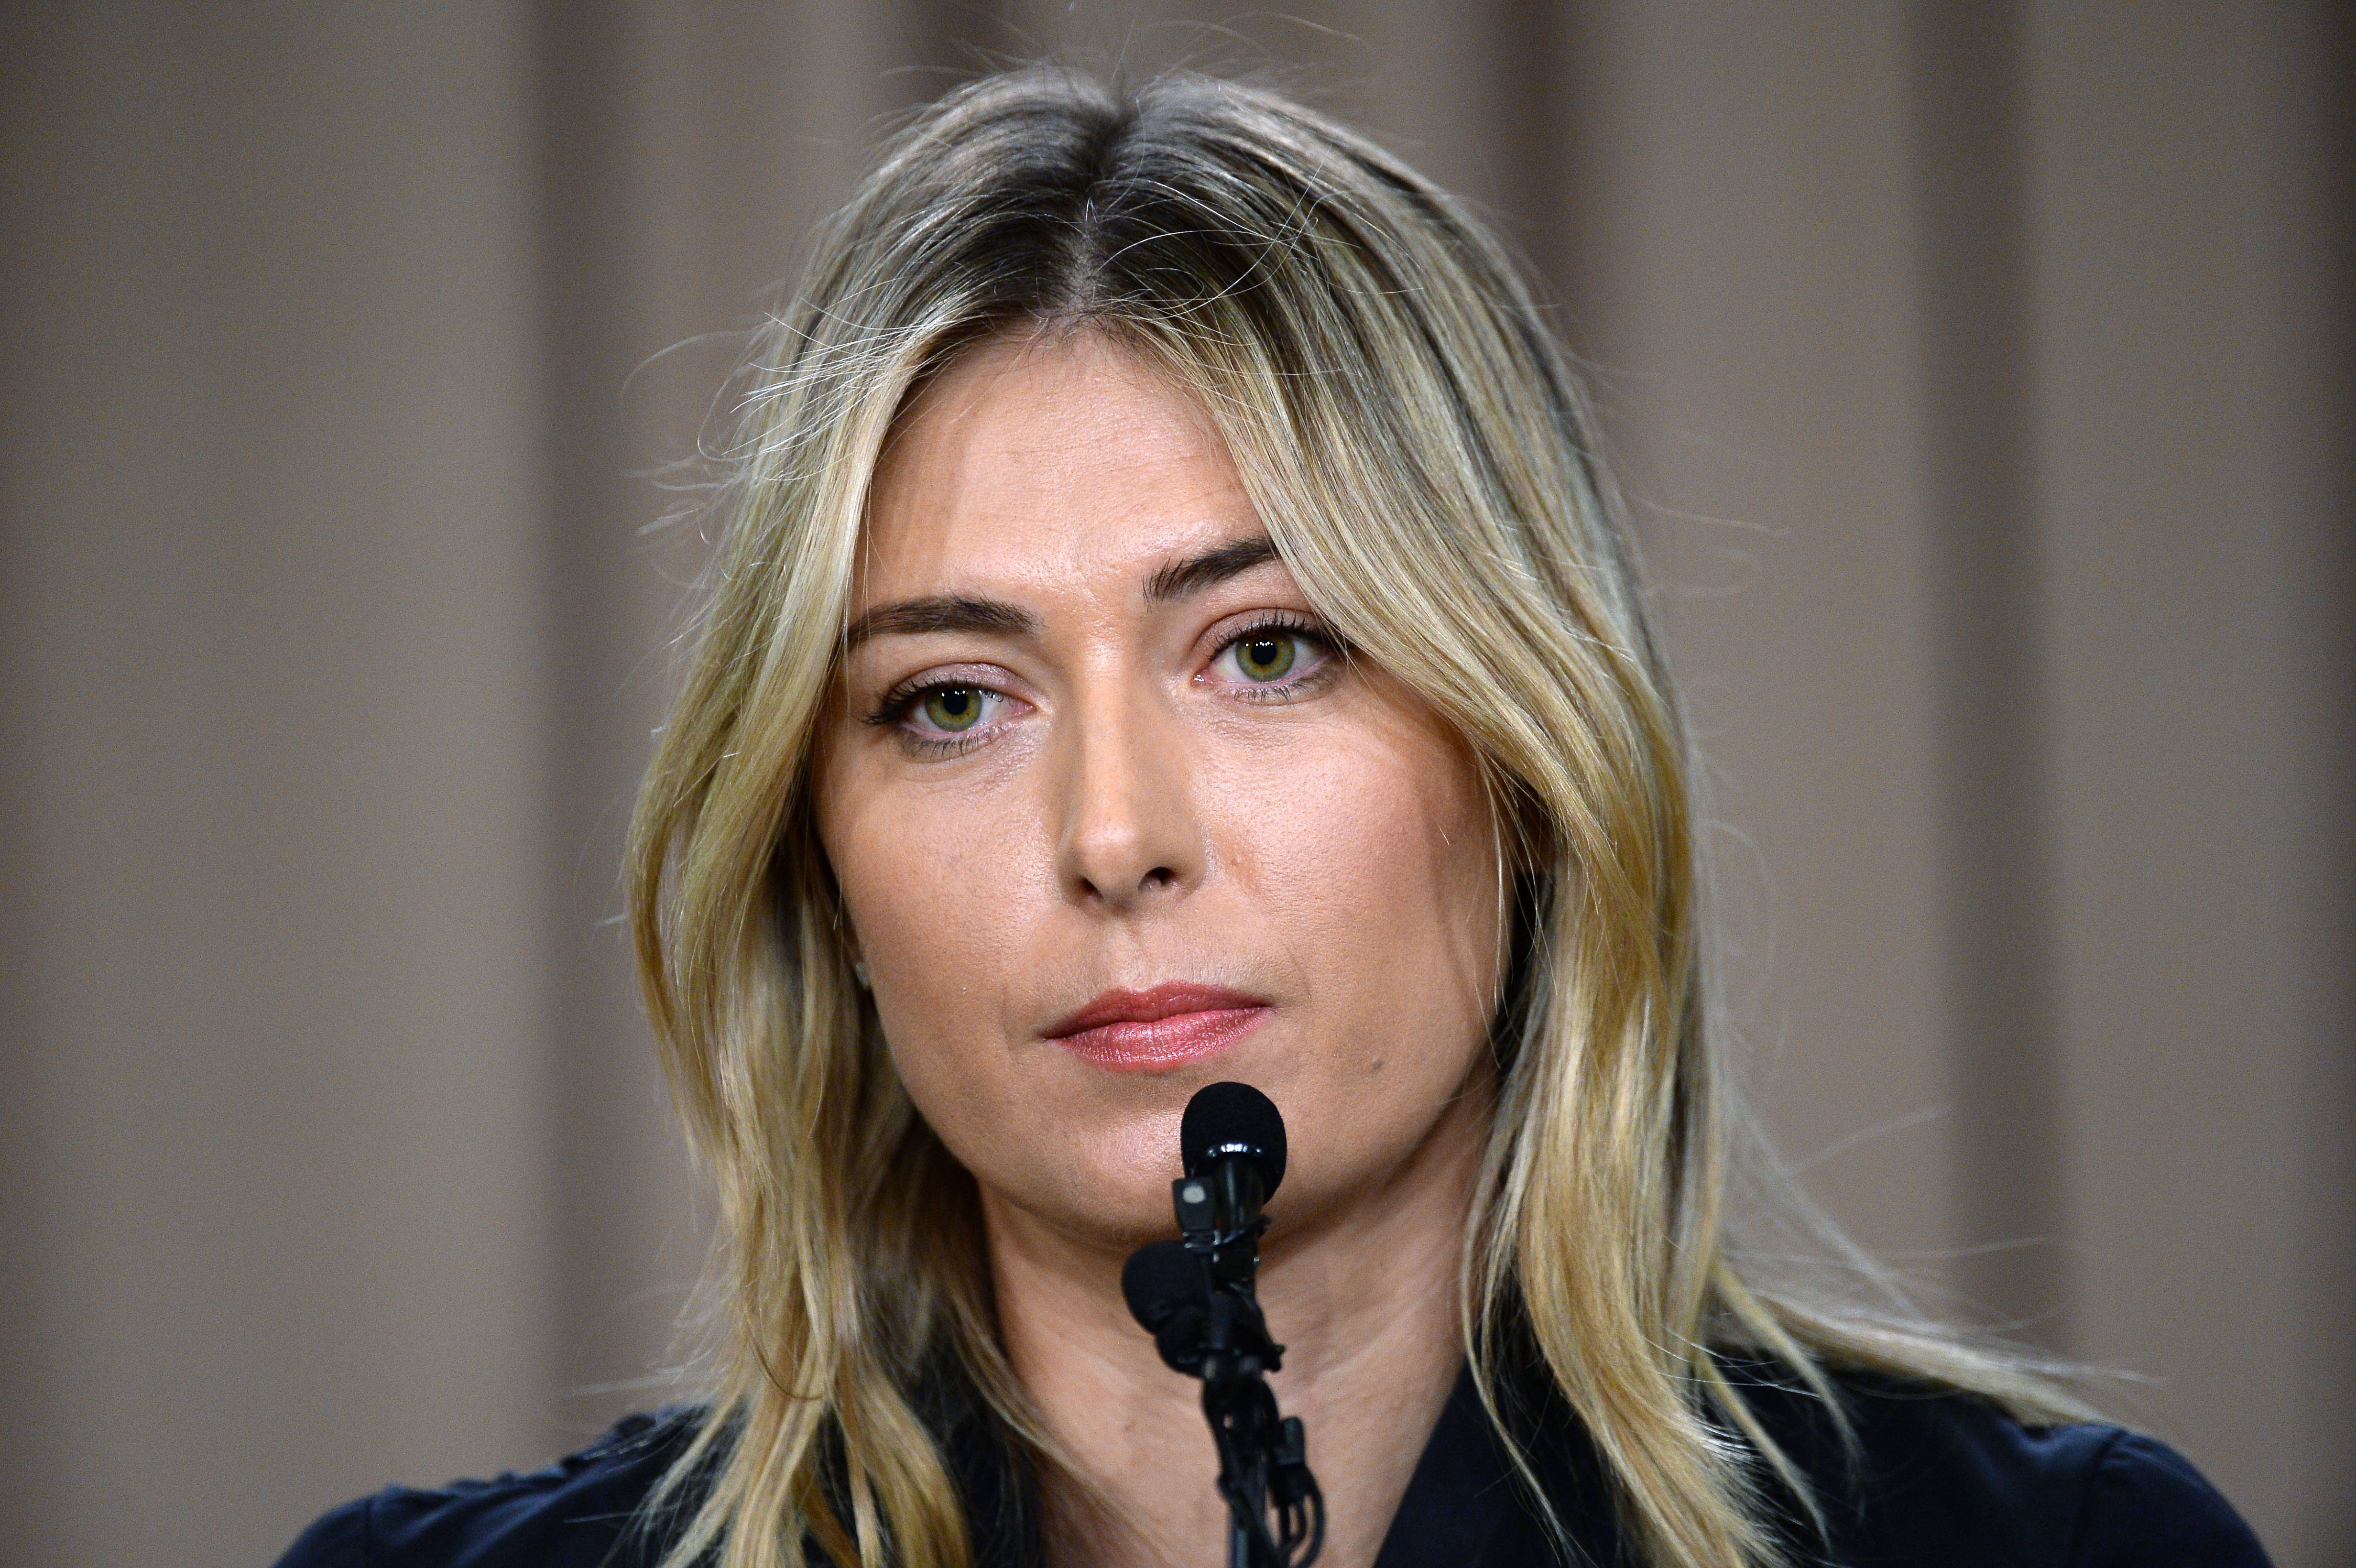 Maria Sharapova receives two-year ban for doping